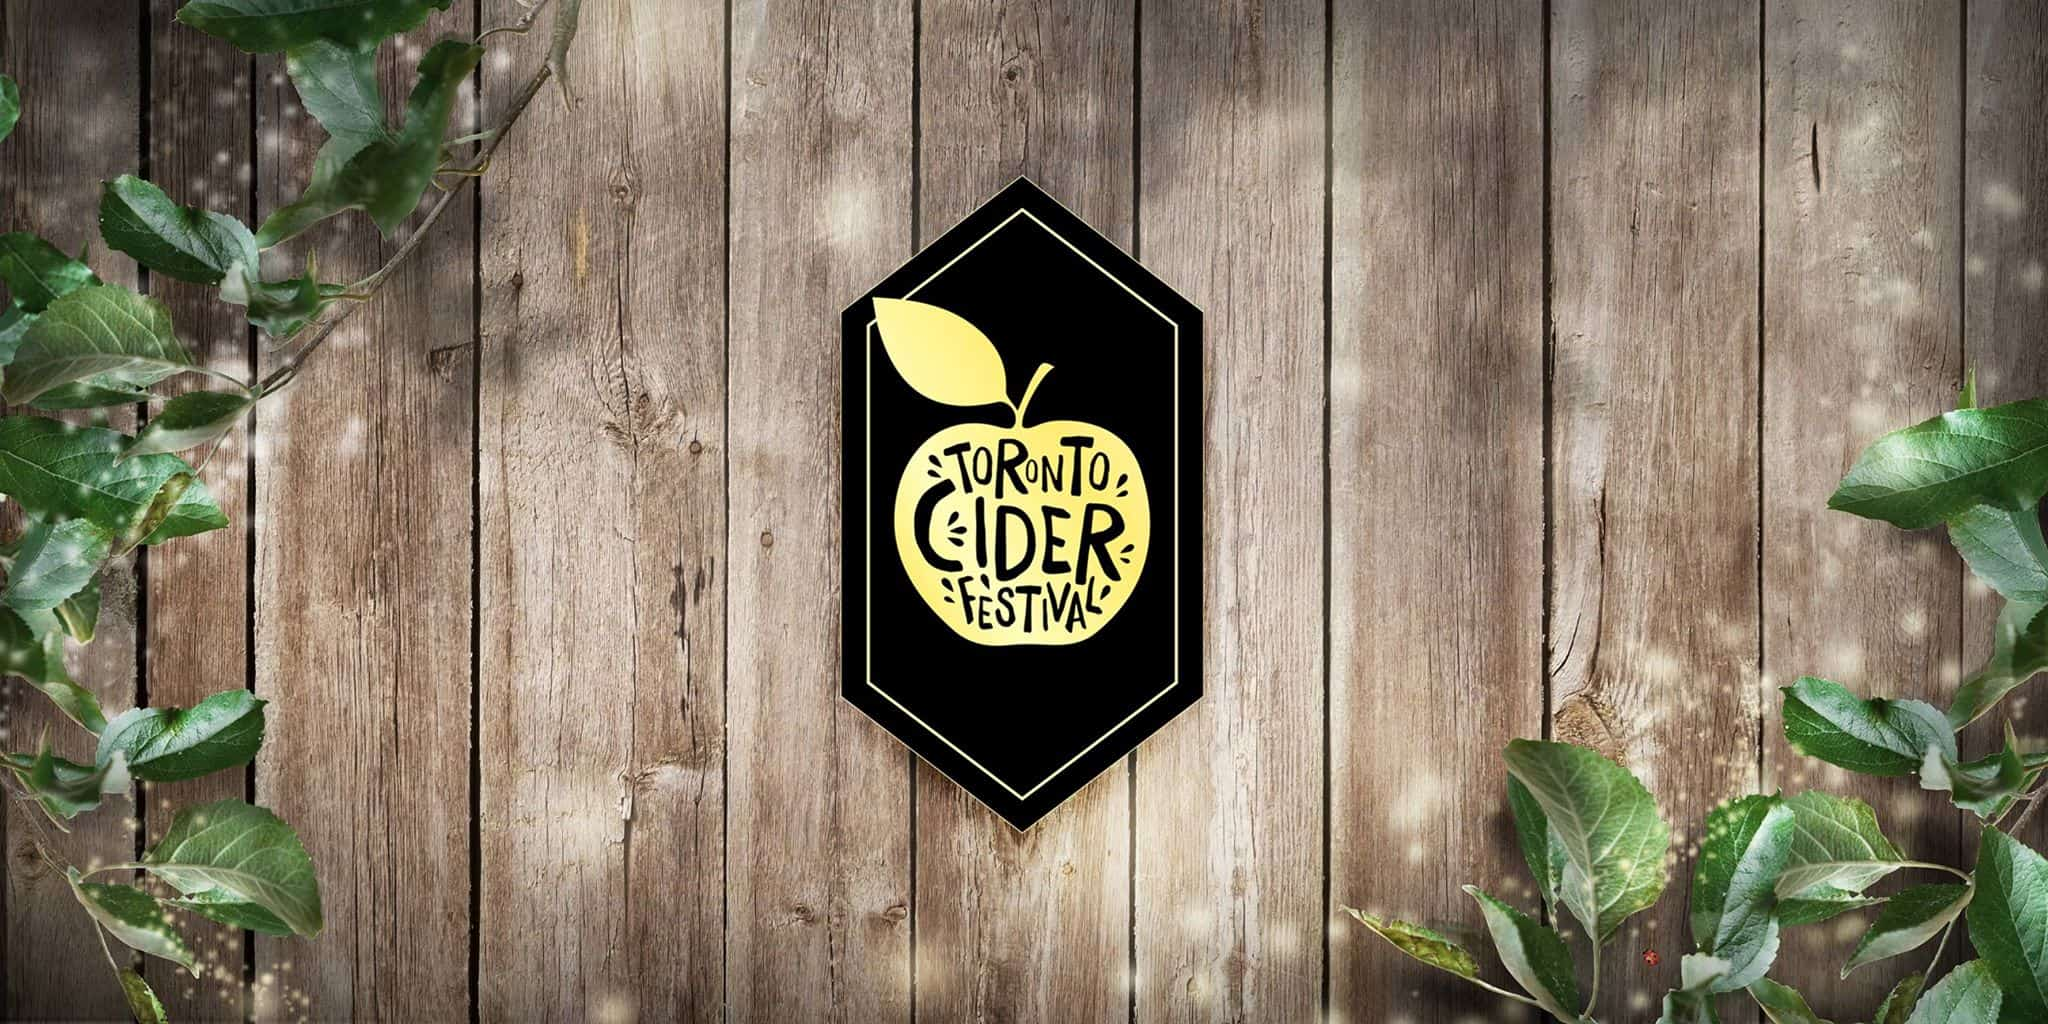 Toronto Cider Festival: Your New Summer Sweet Spot